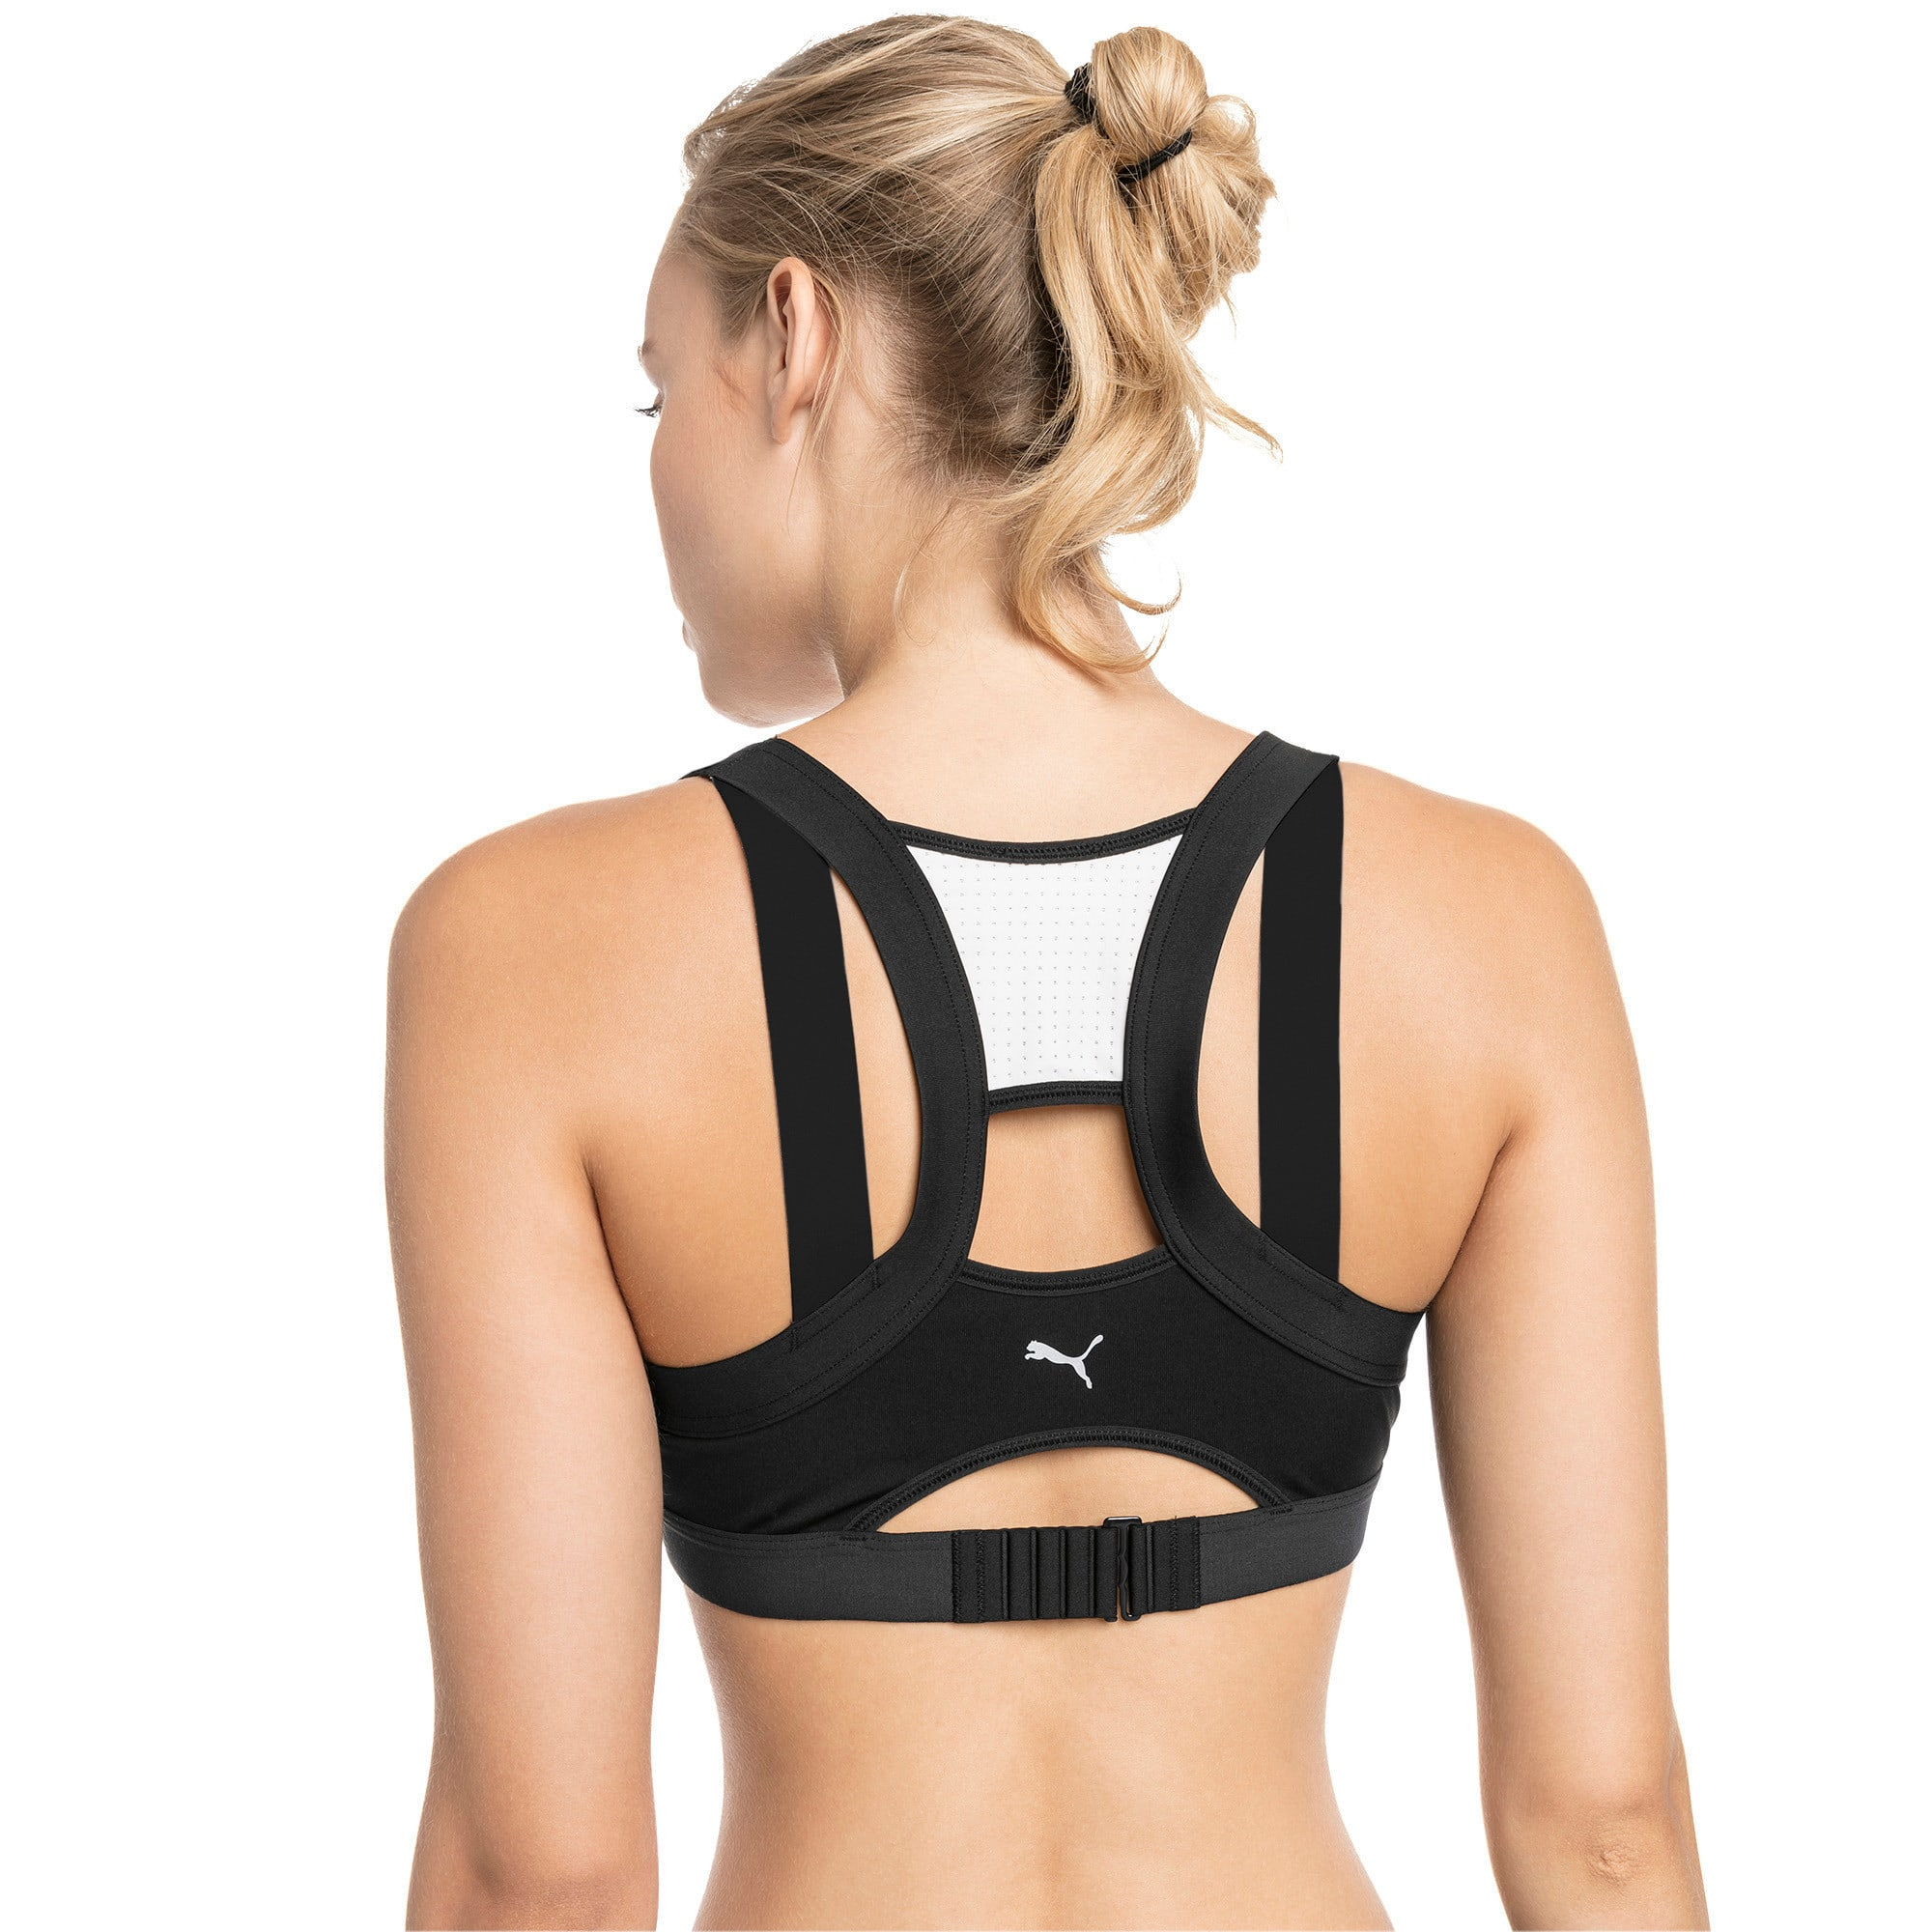 Thumbnail 2 of Density Women's High Impact Bra, Puma Black-Puma White, medium